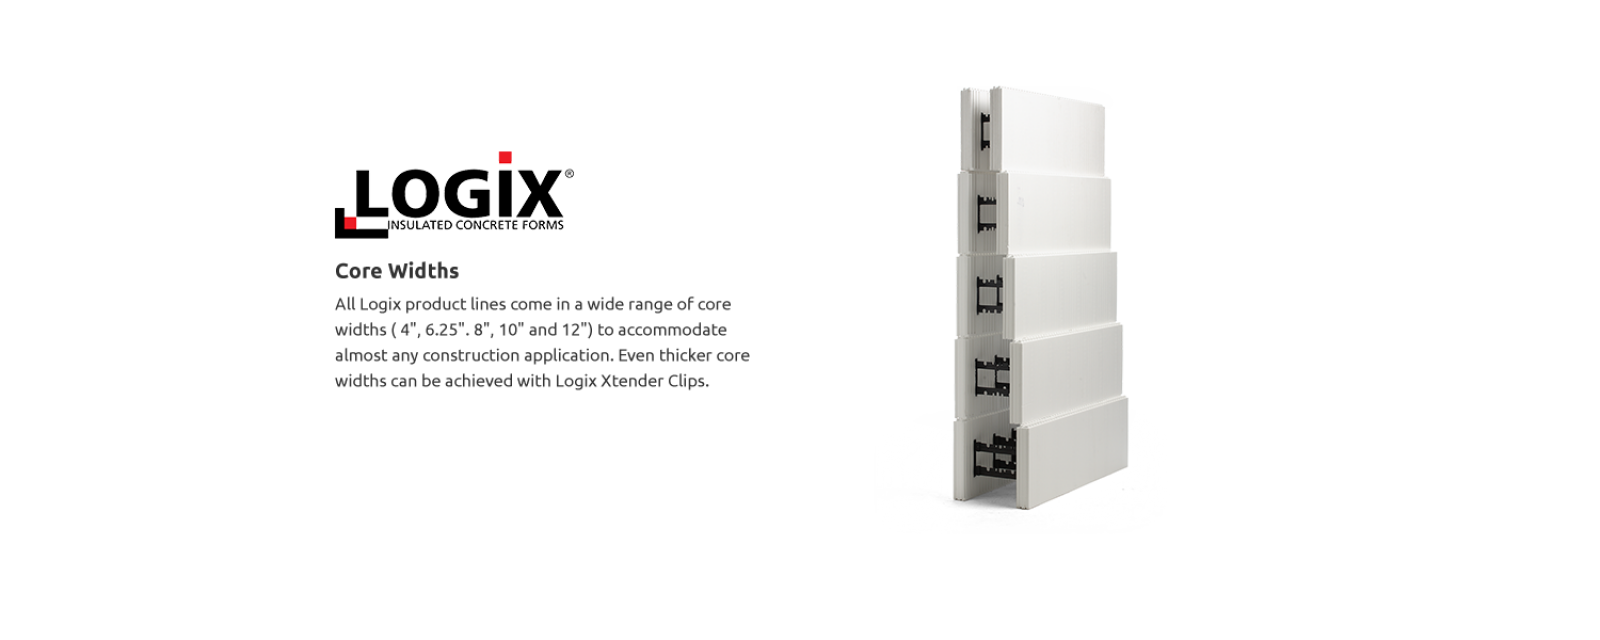 Logixicf insulated concrete forms icf blocks for Foam block foundation prices